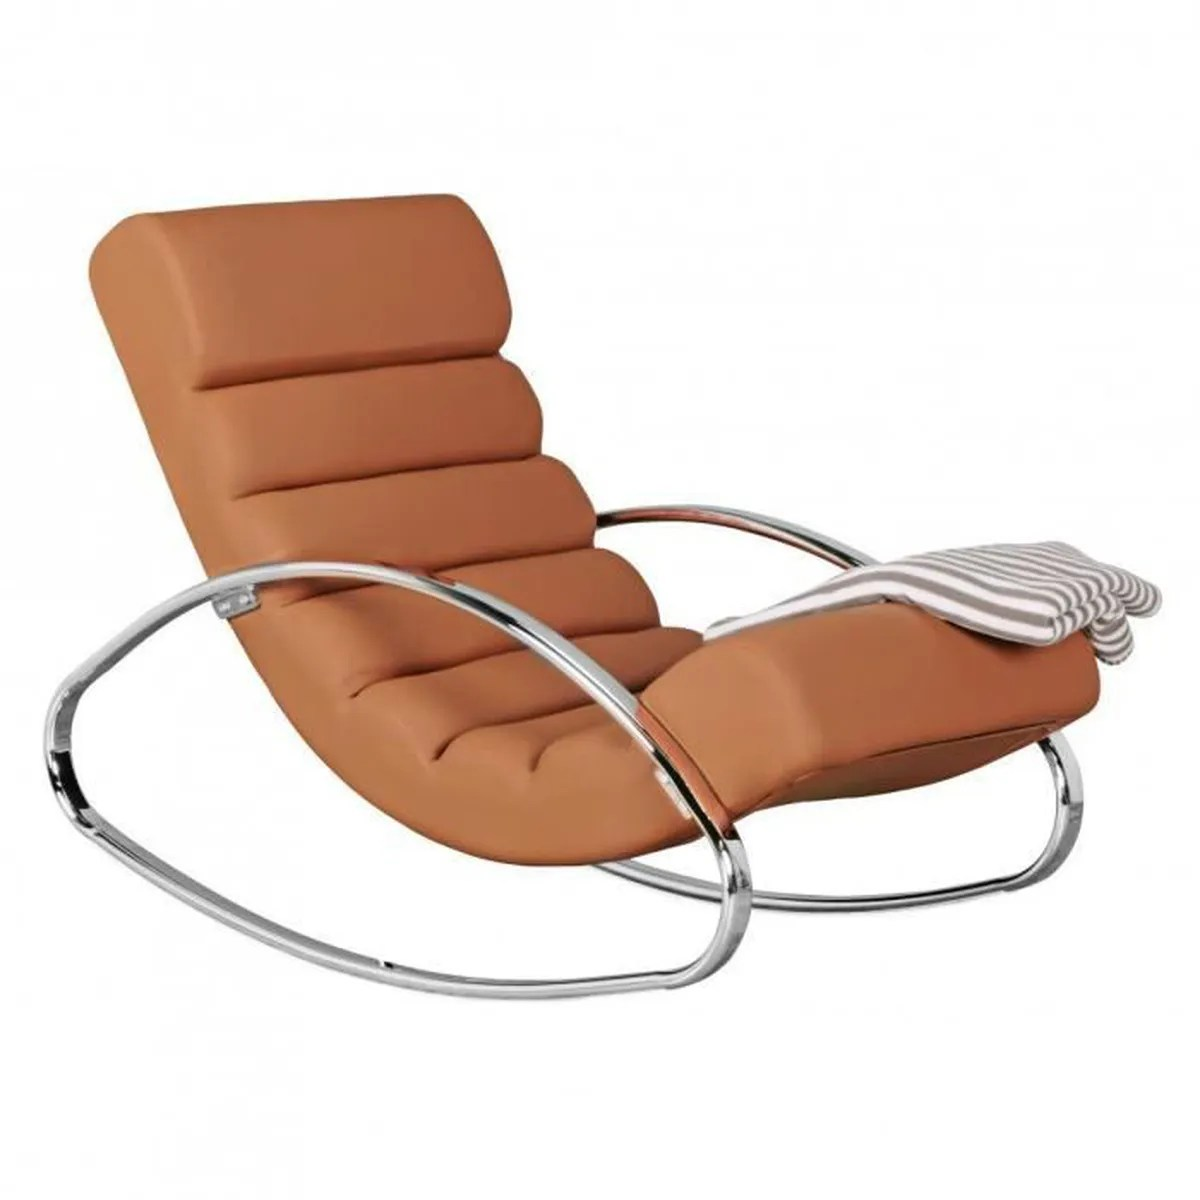 Relaxsessel Design Relax Fauteuil Inclinable Brun Relaxsessel Design Rocking Chair